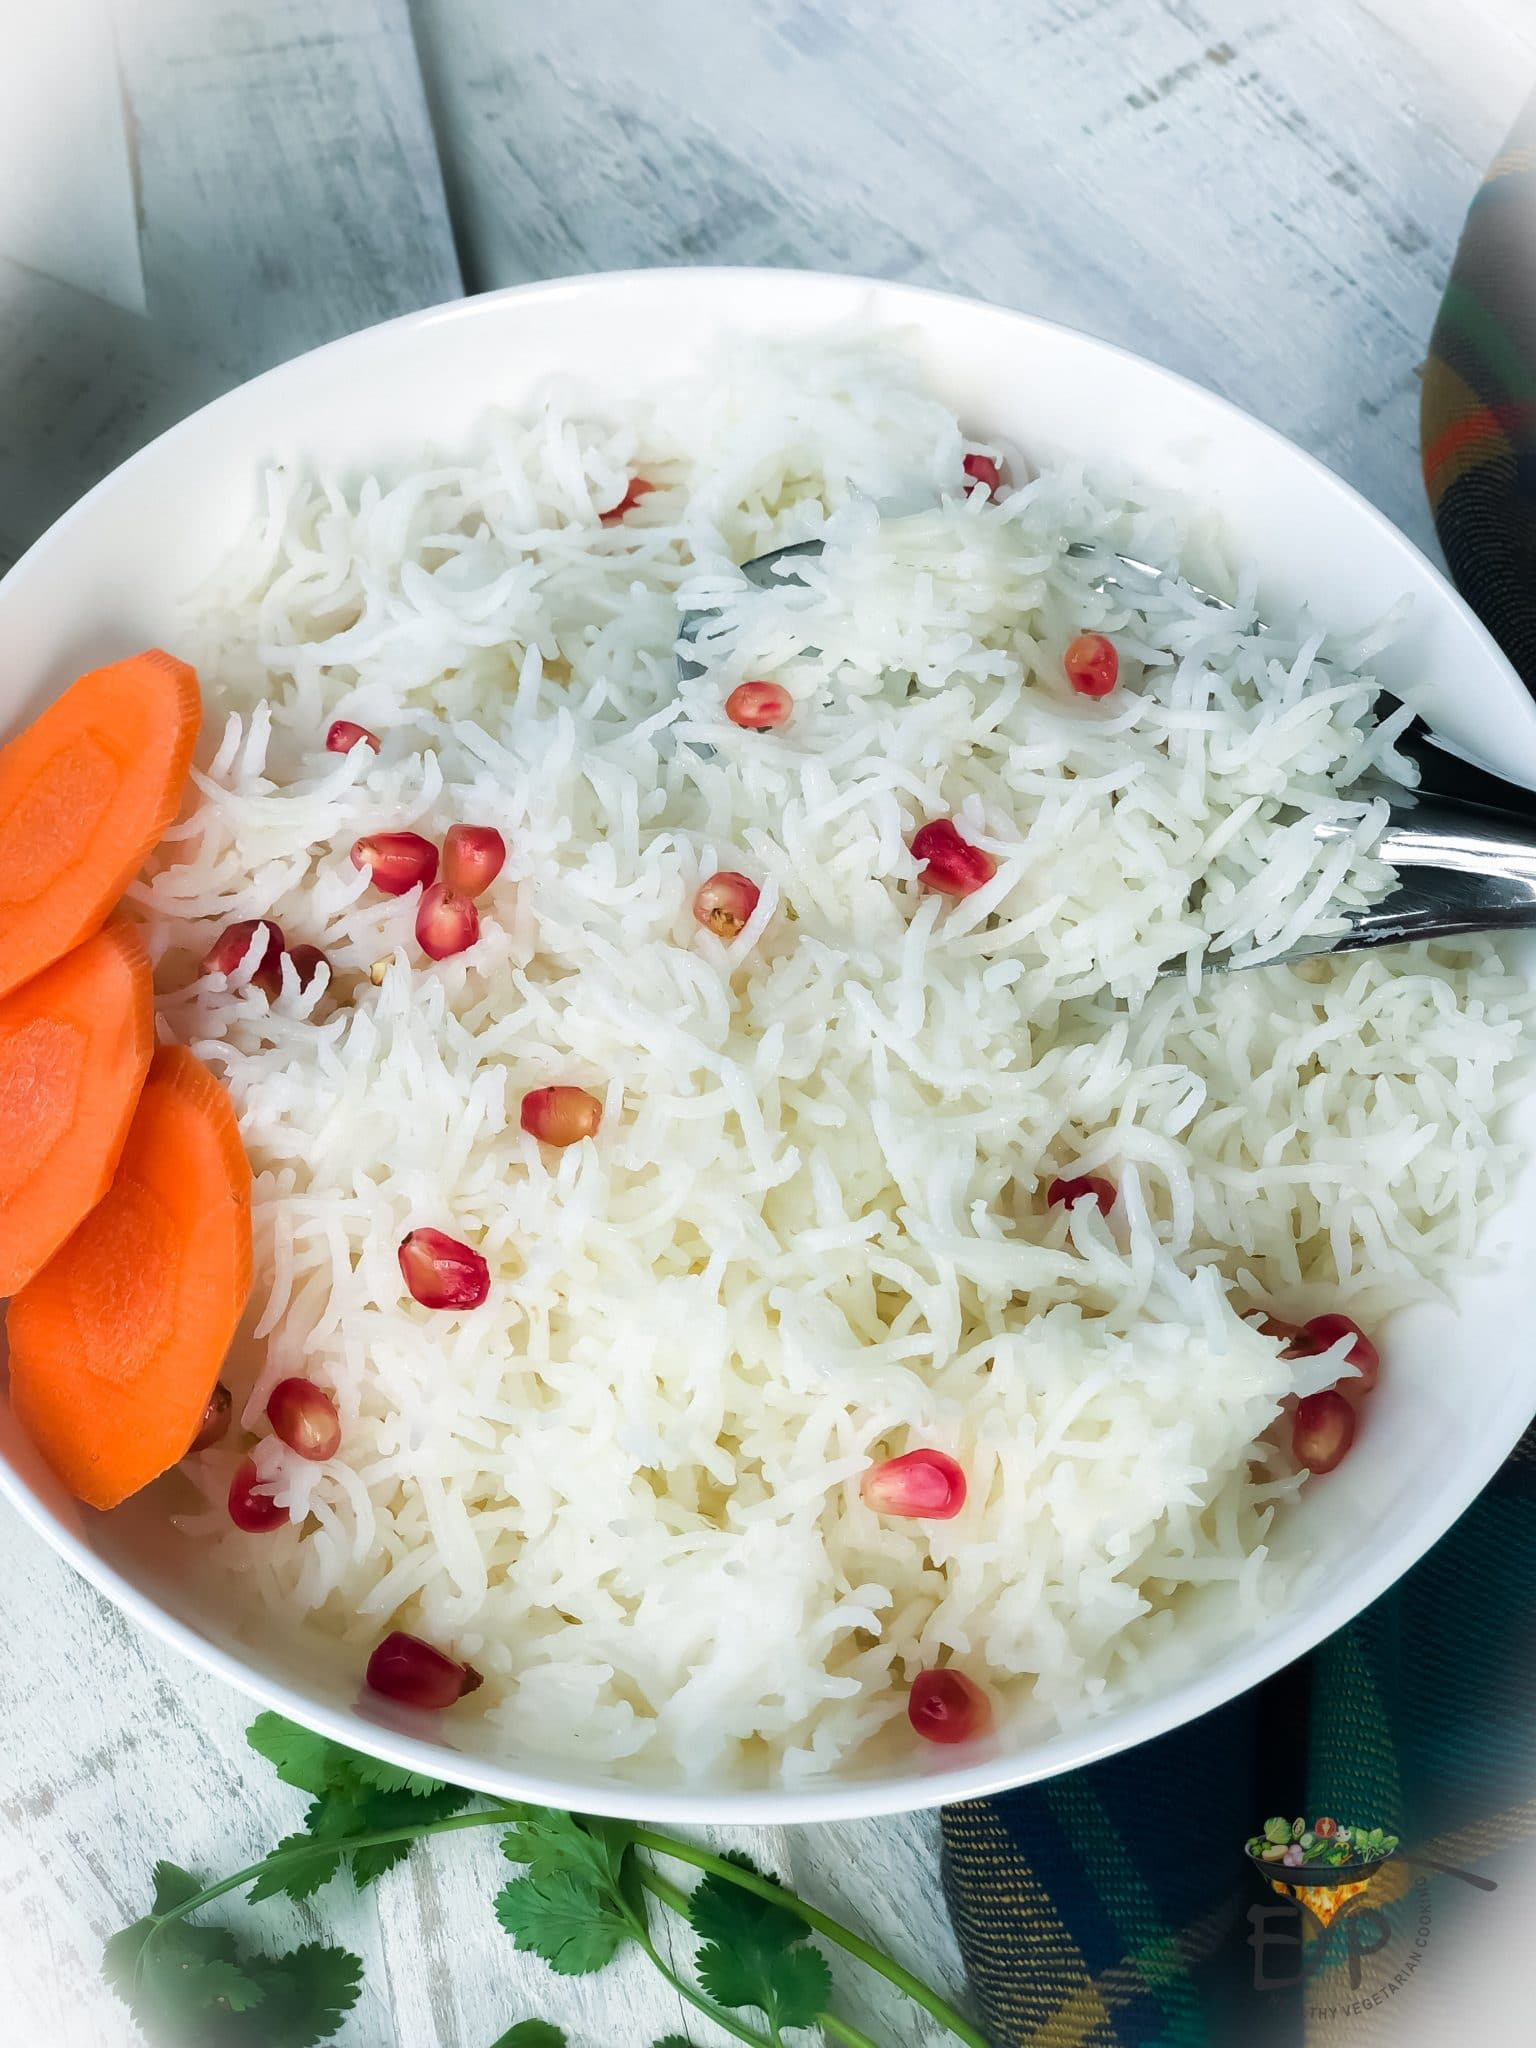 How to get a perfect steamed rice? Steamed rice is considered to be a very simple recipe, still the quality of steamed rice can vary greatly depending on your cooking method and type of rice. Ideally, in steamed rice, we want each grain to be seprate, soft and cooked perfectly. Rice grains should be fluffed, soft and not stick to each other. Check this recipe out to make sure you are doing it the right way.